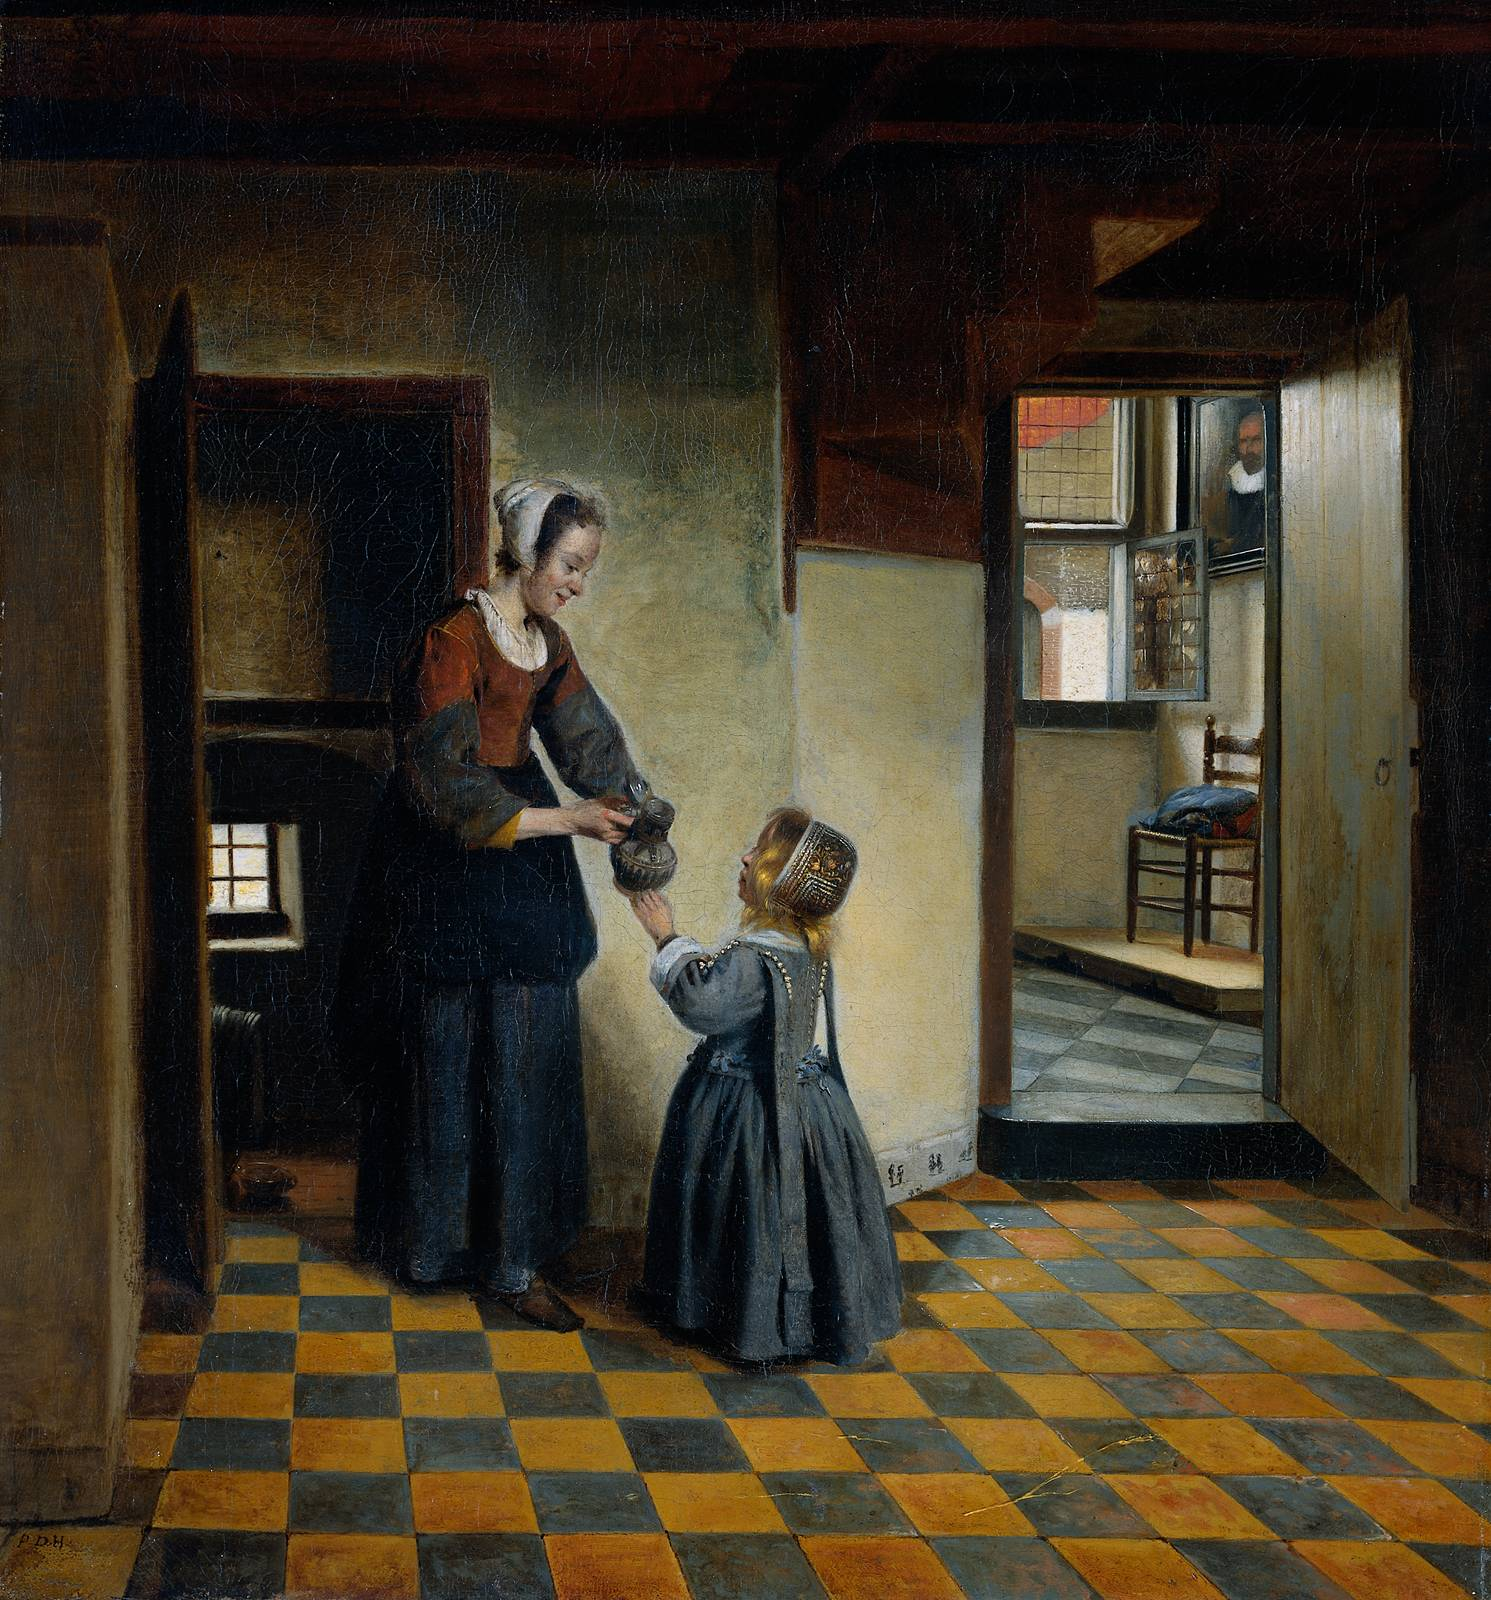 Pieter de Hooch - A Baroque Era painter